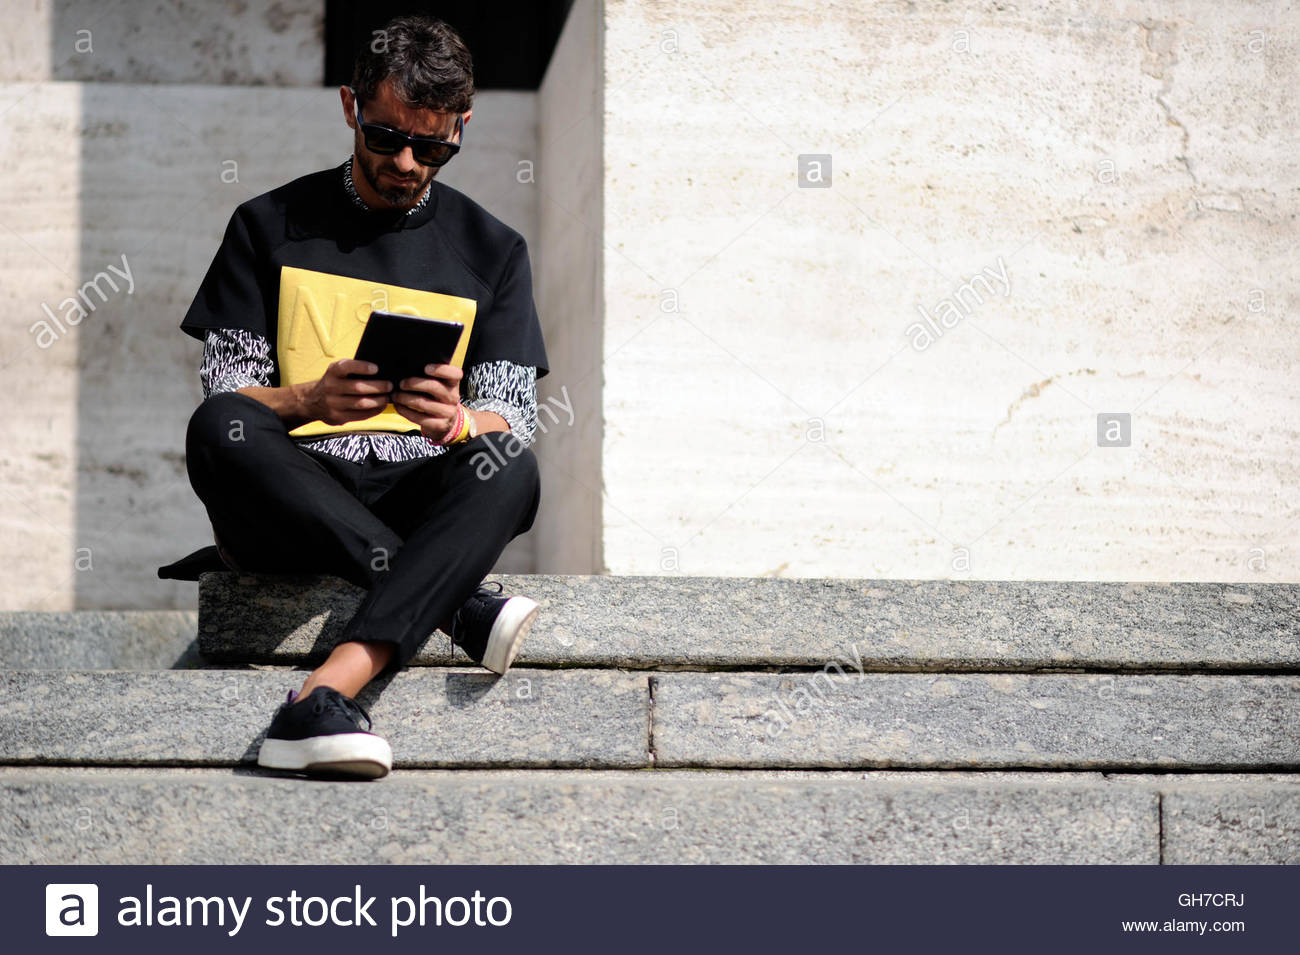 Simone marchetti in Milan during Milan Fashion Week. - Stock Image